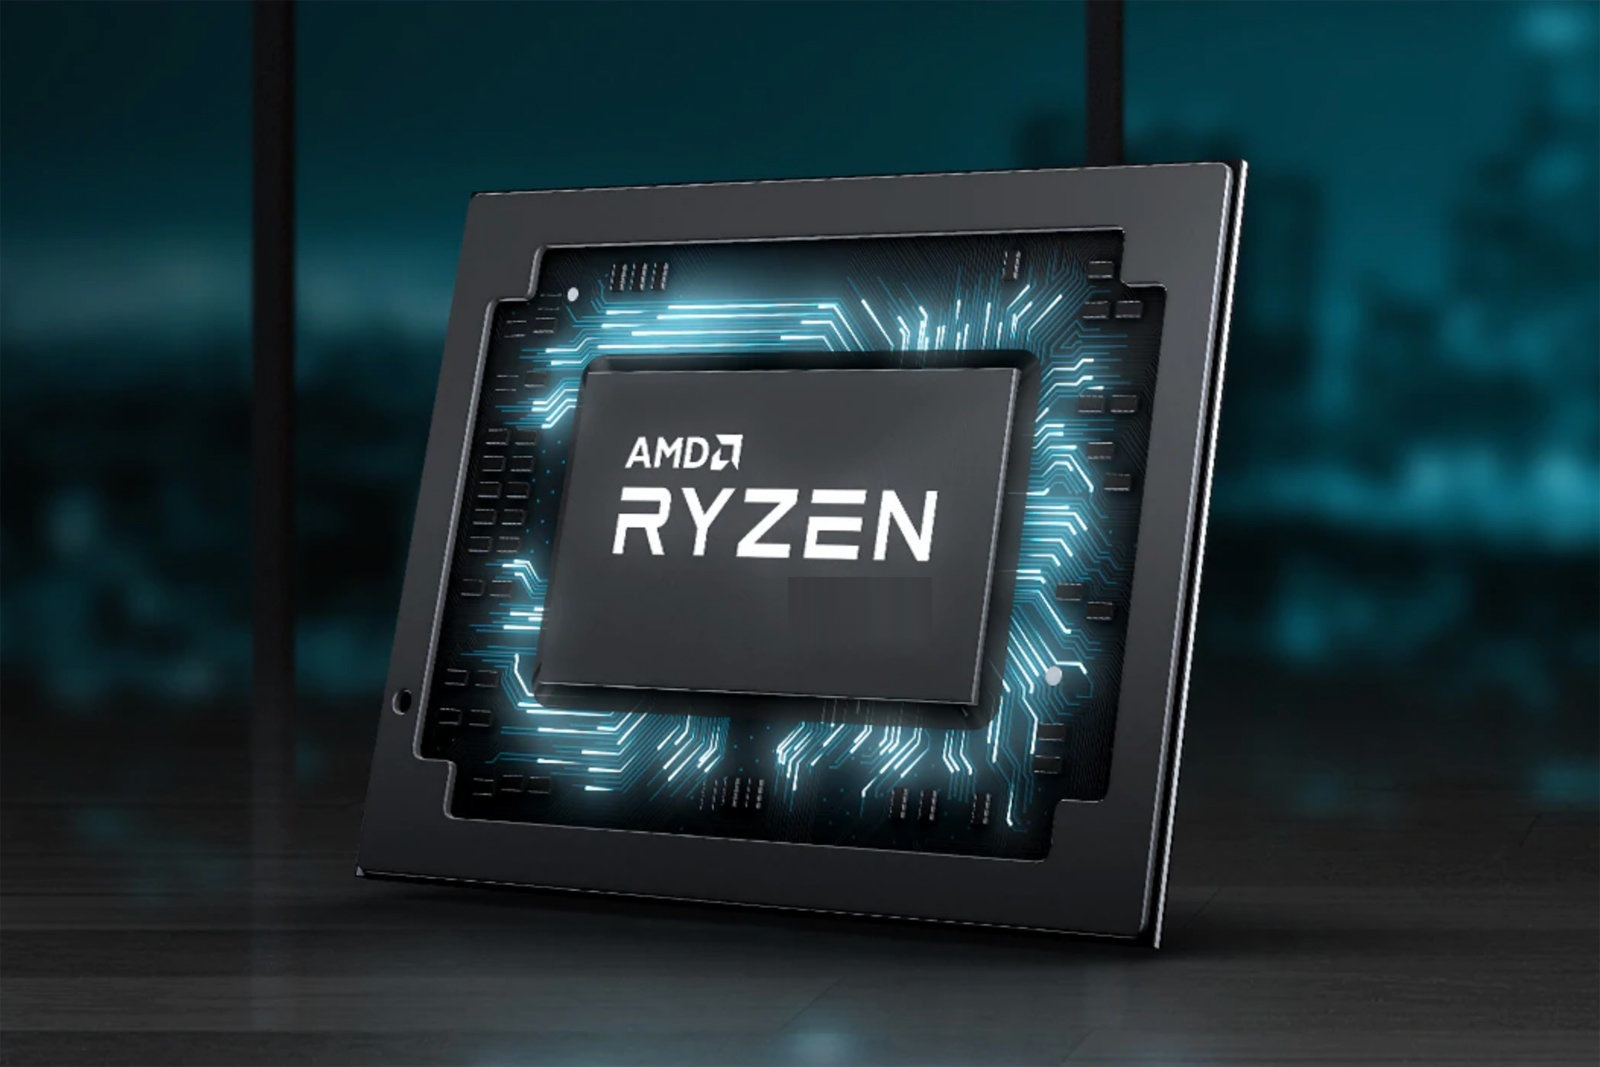 AMD laptop silicon roadmap between 2020 and 2022 flows with details on Rembrandt, Barcelo and Dragon Crest series thumbnail